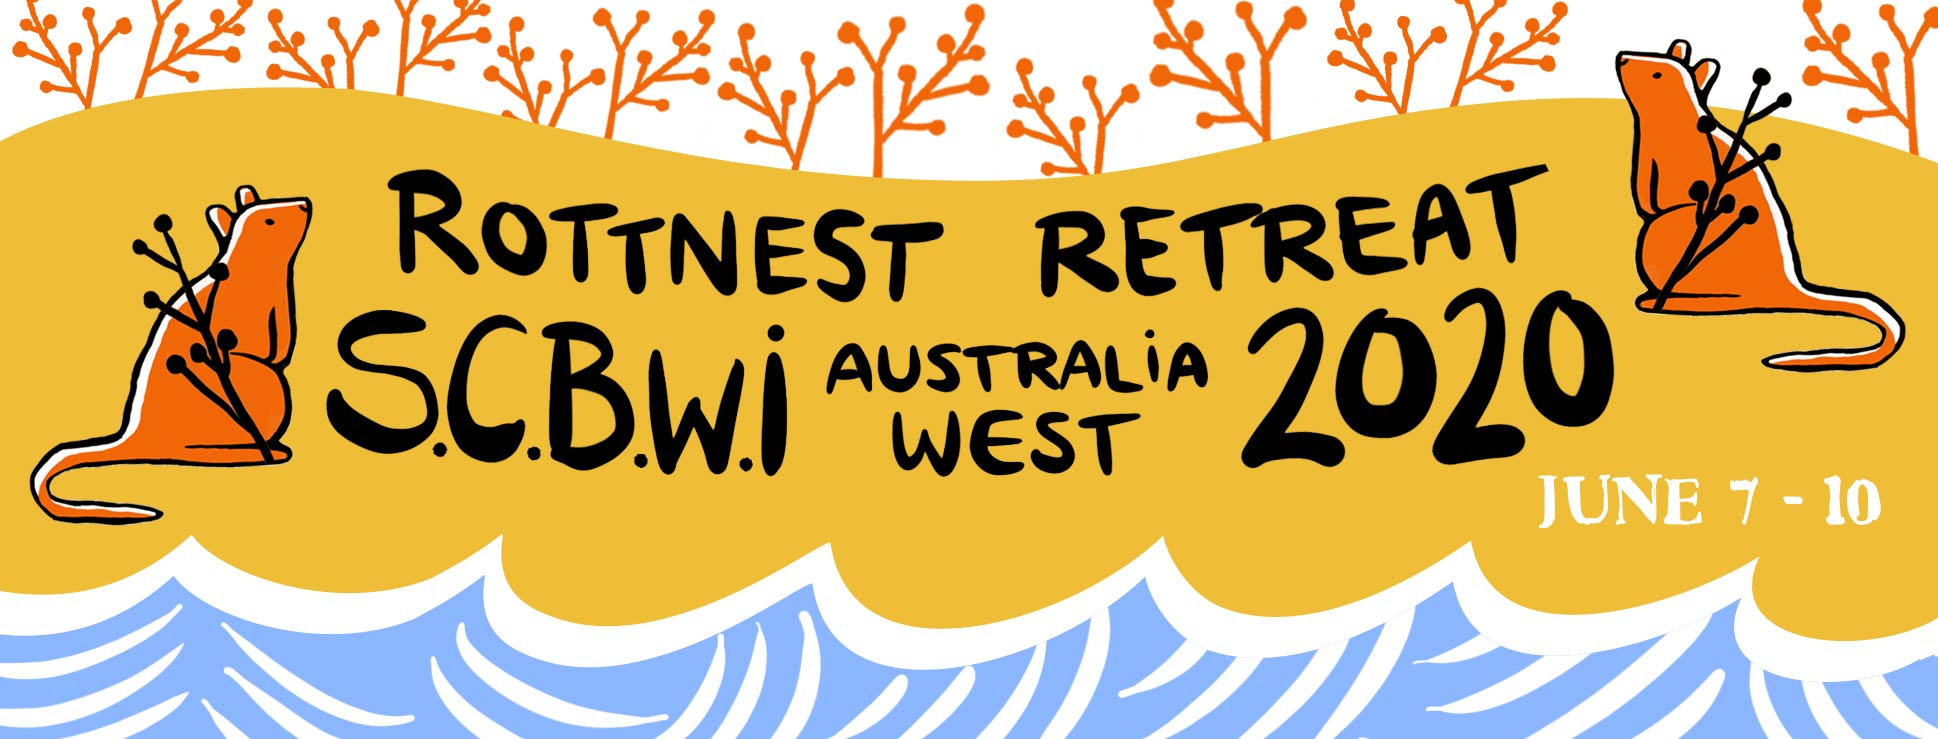 SCBWI Australia West Rottnest Retreat 2020